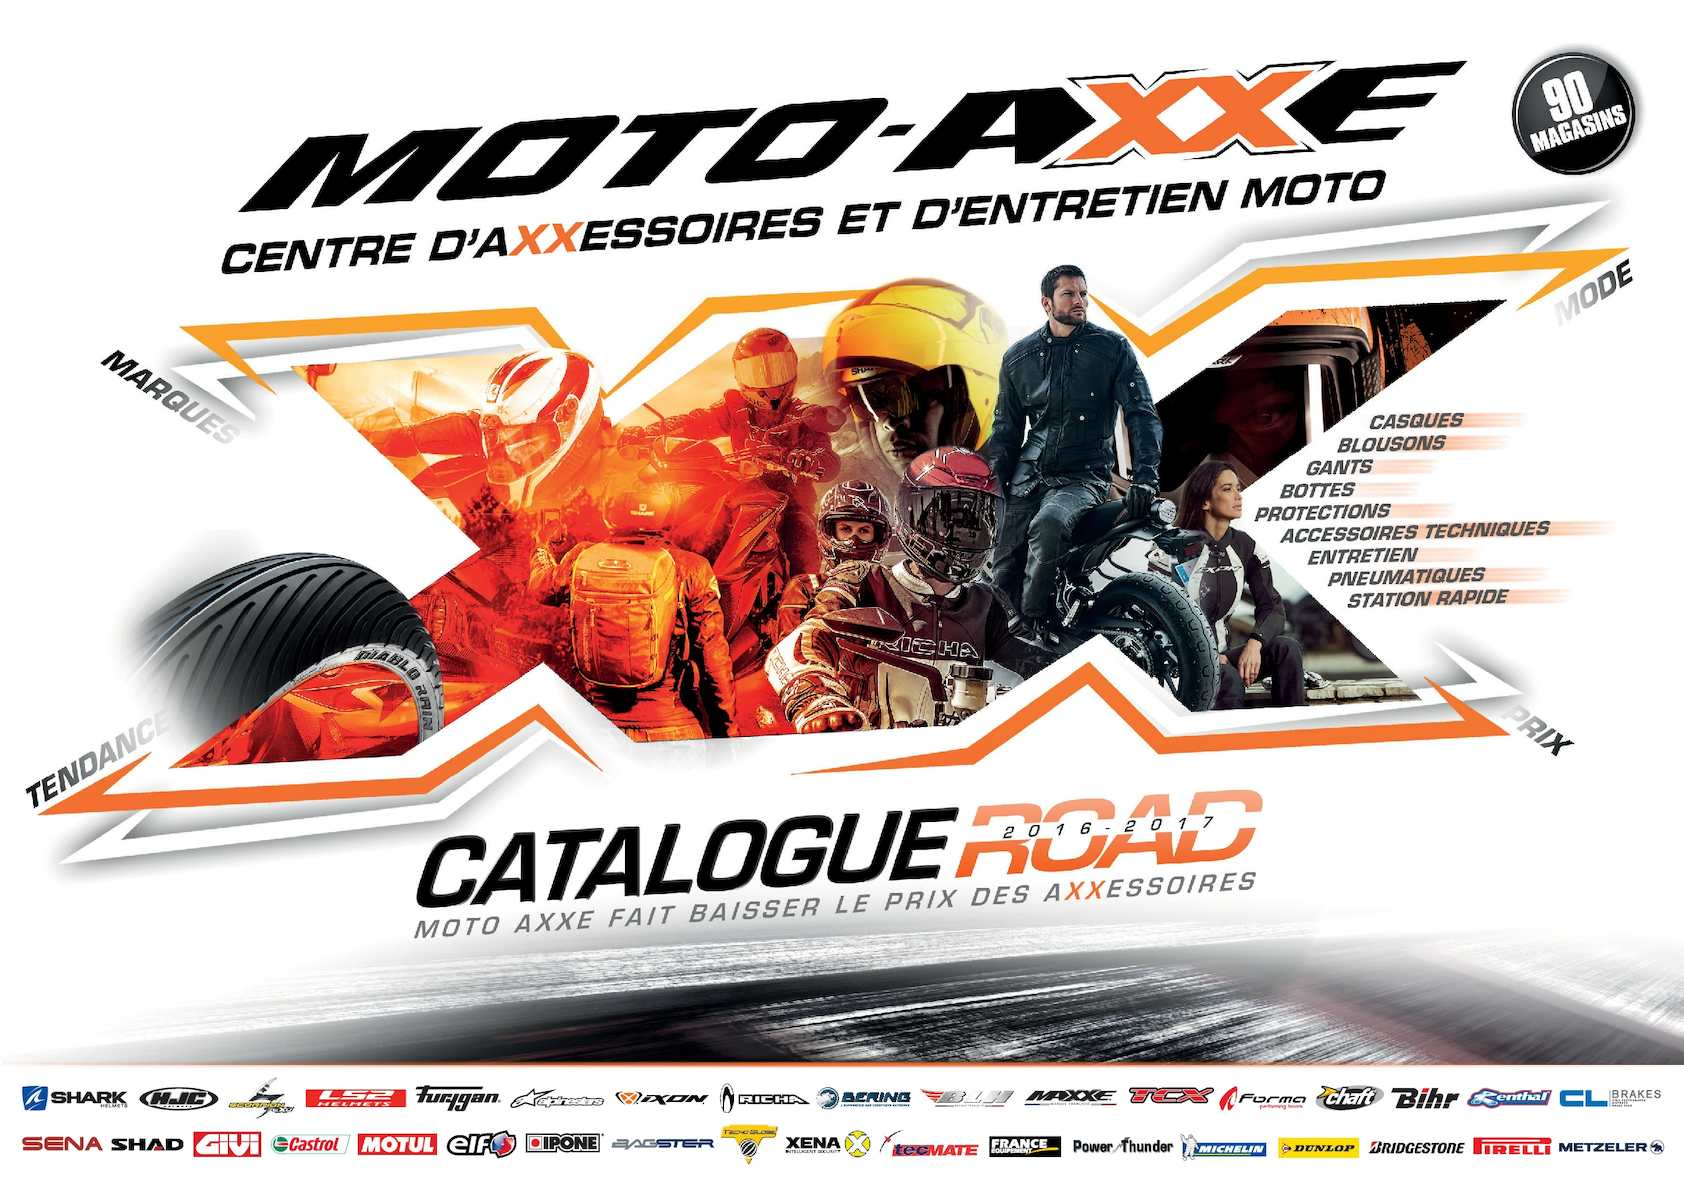 bf8baf24c303e4 Calaméo - CATALOGUE MOTO-AXXE ROAD 2016-2017